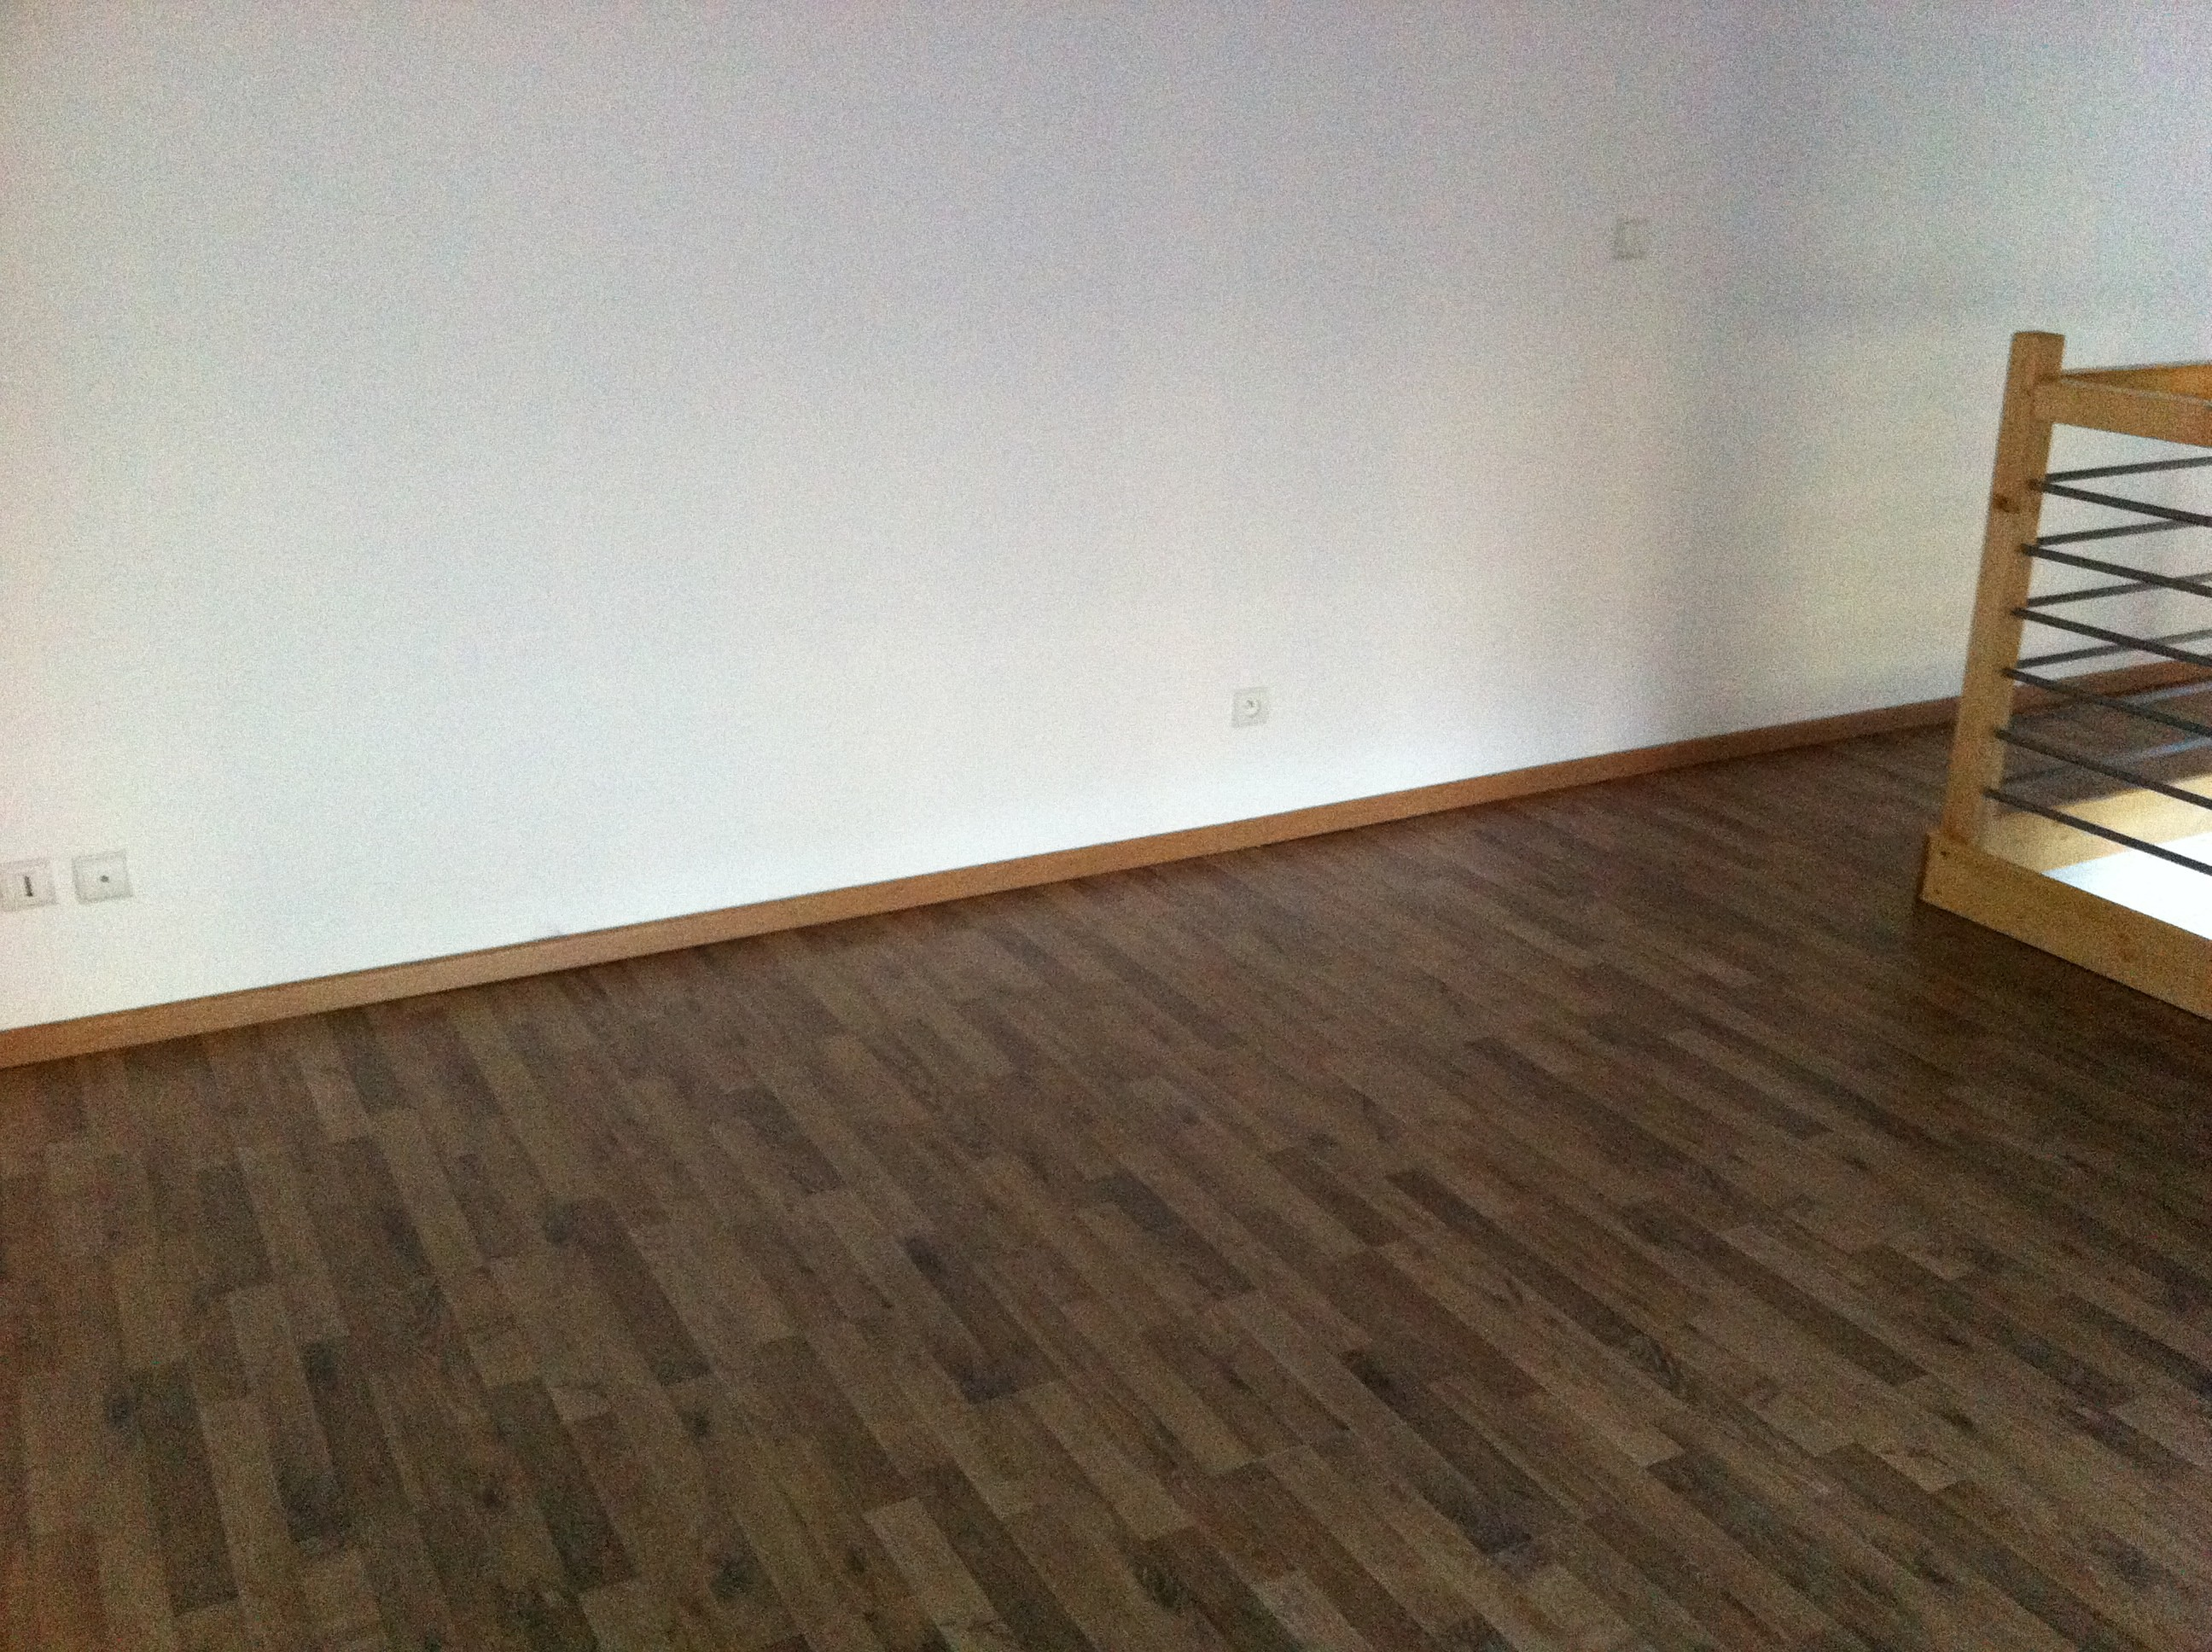 Installation chauffage invisible extra mince sous parquet